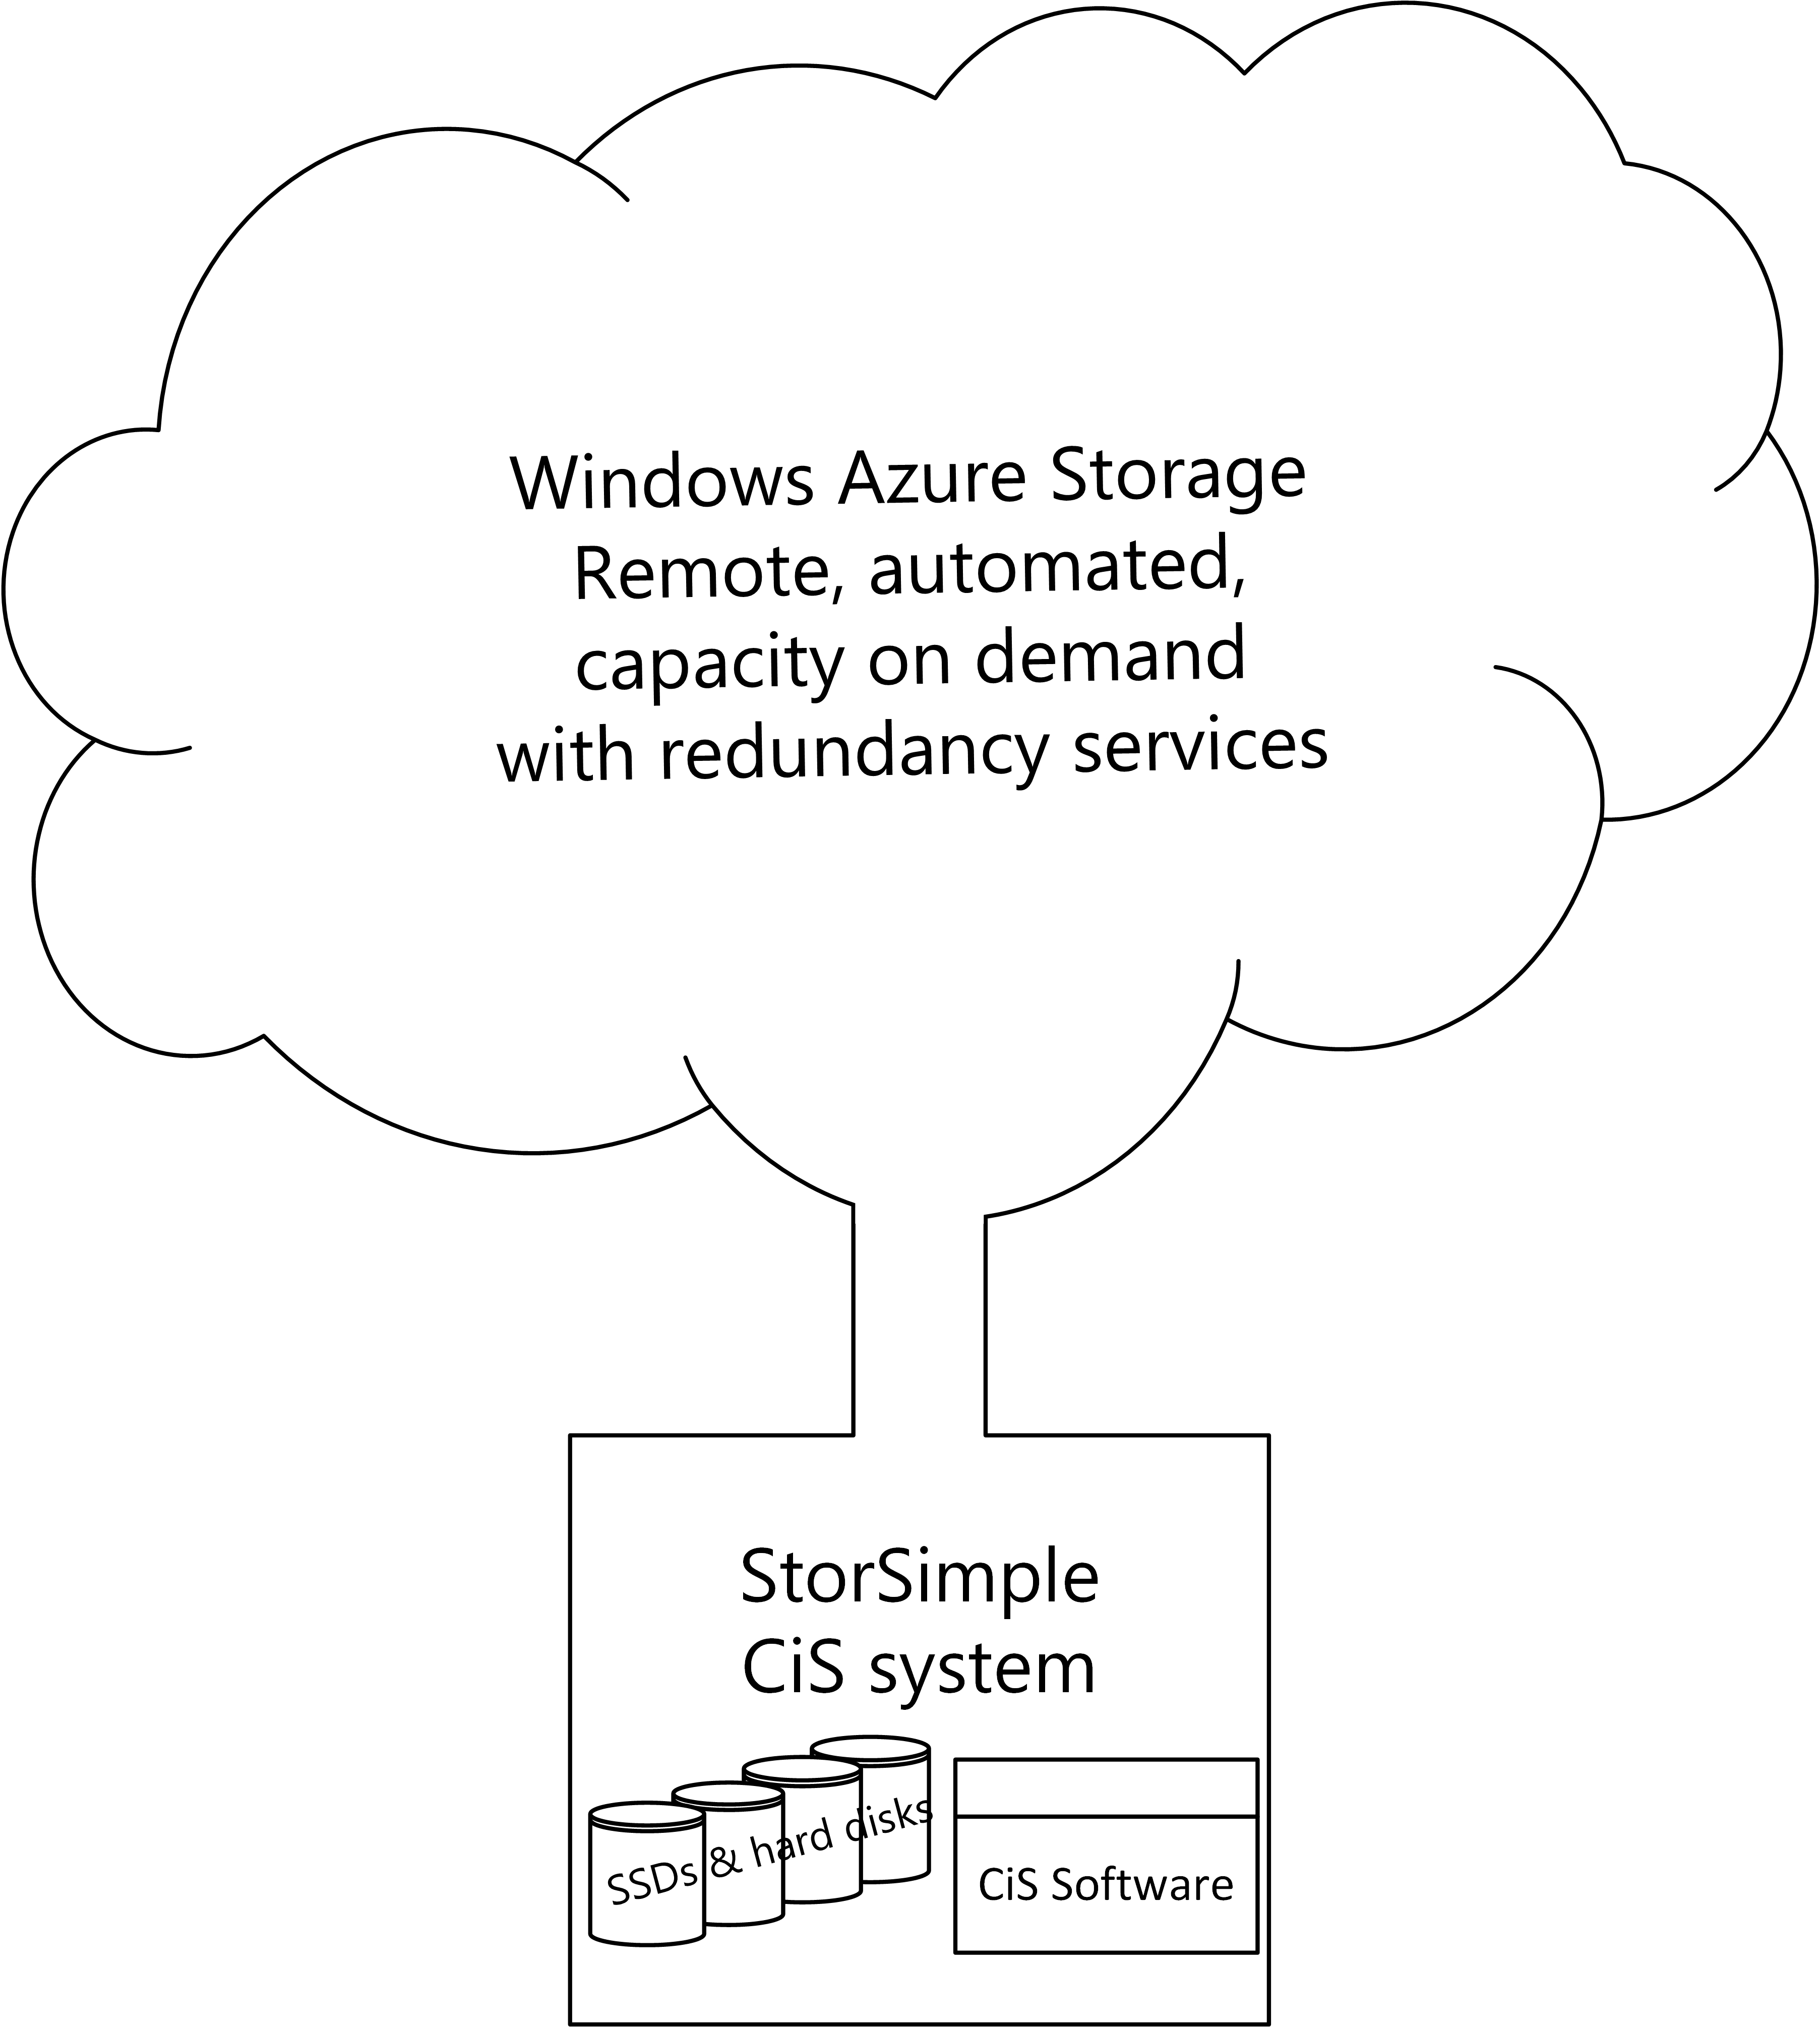 Microsoft hybrid cloud storage solution